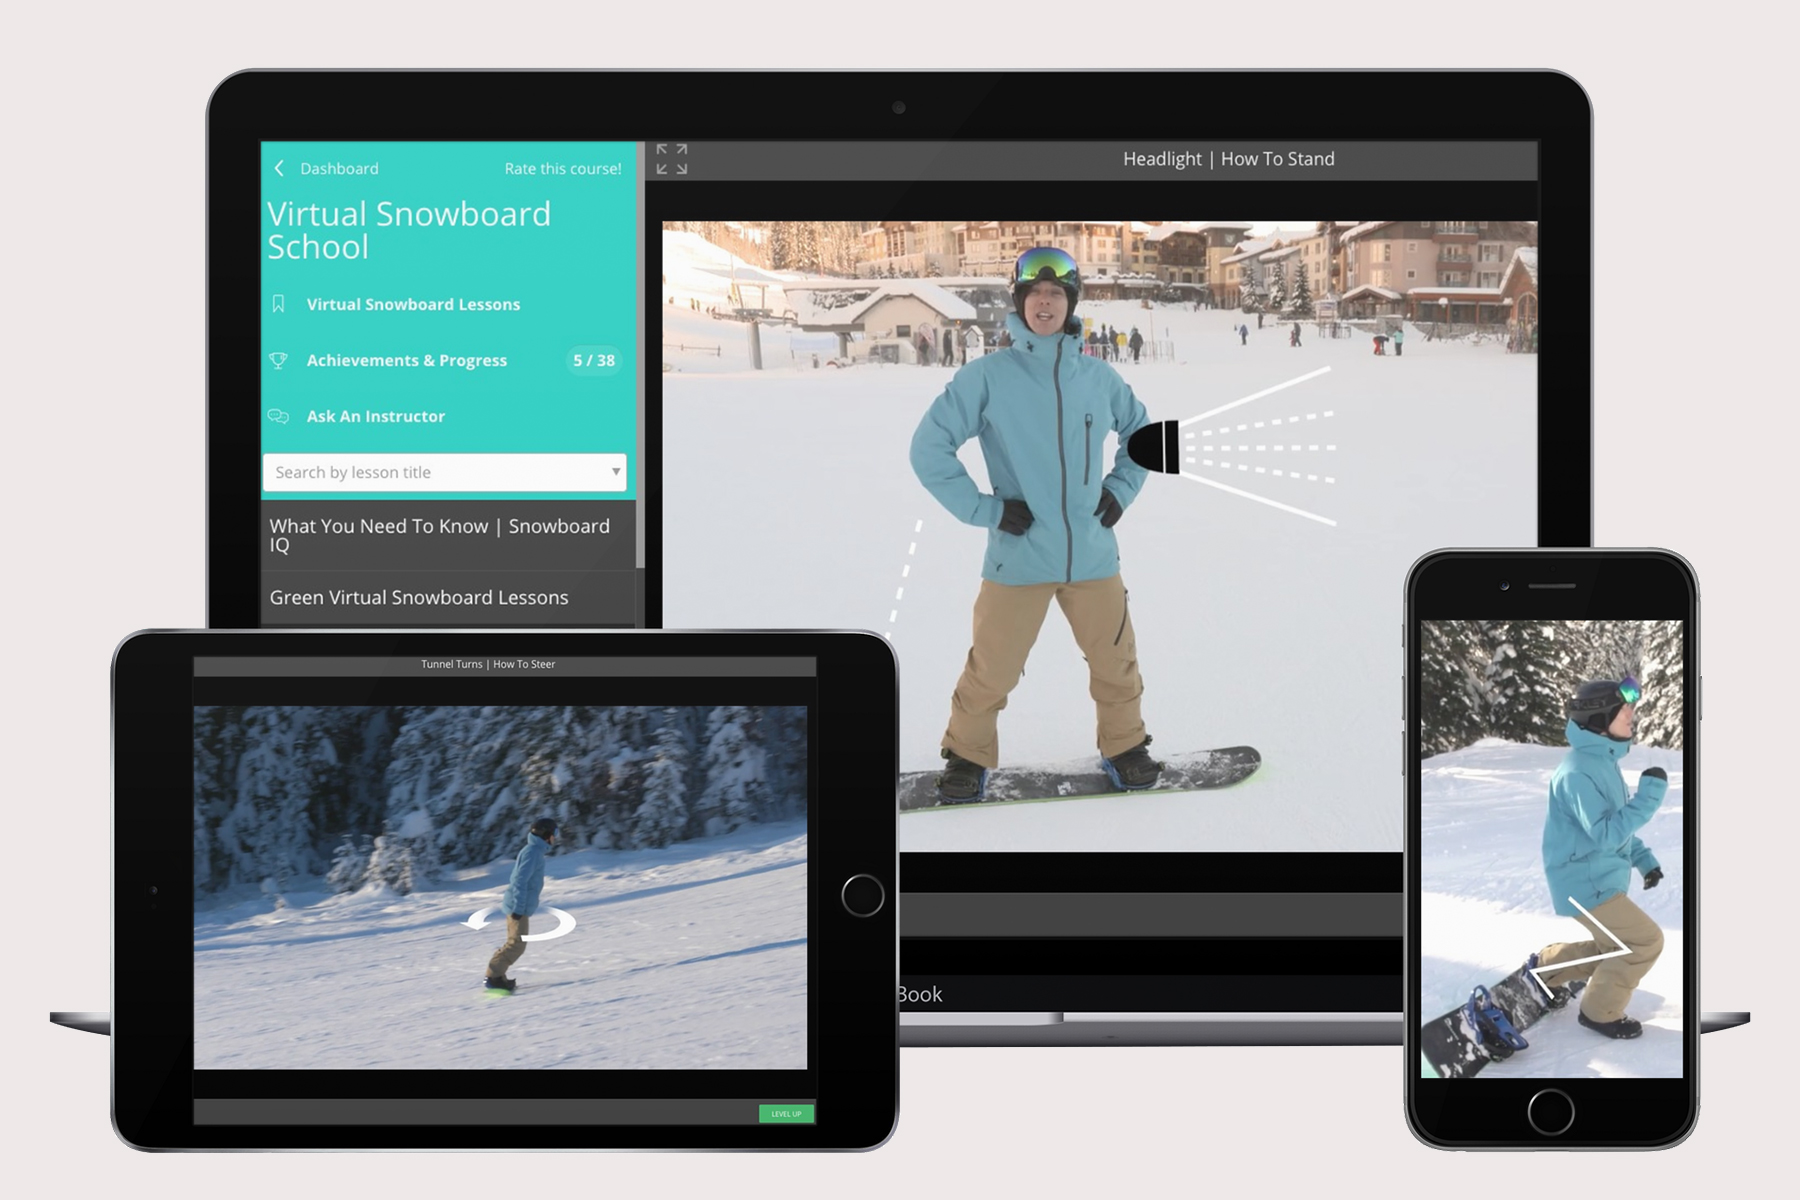 Watch and Ride virtual snowboard school